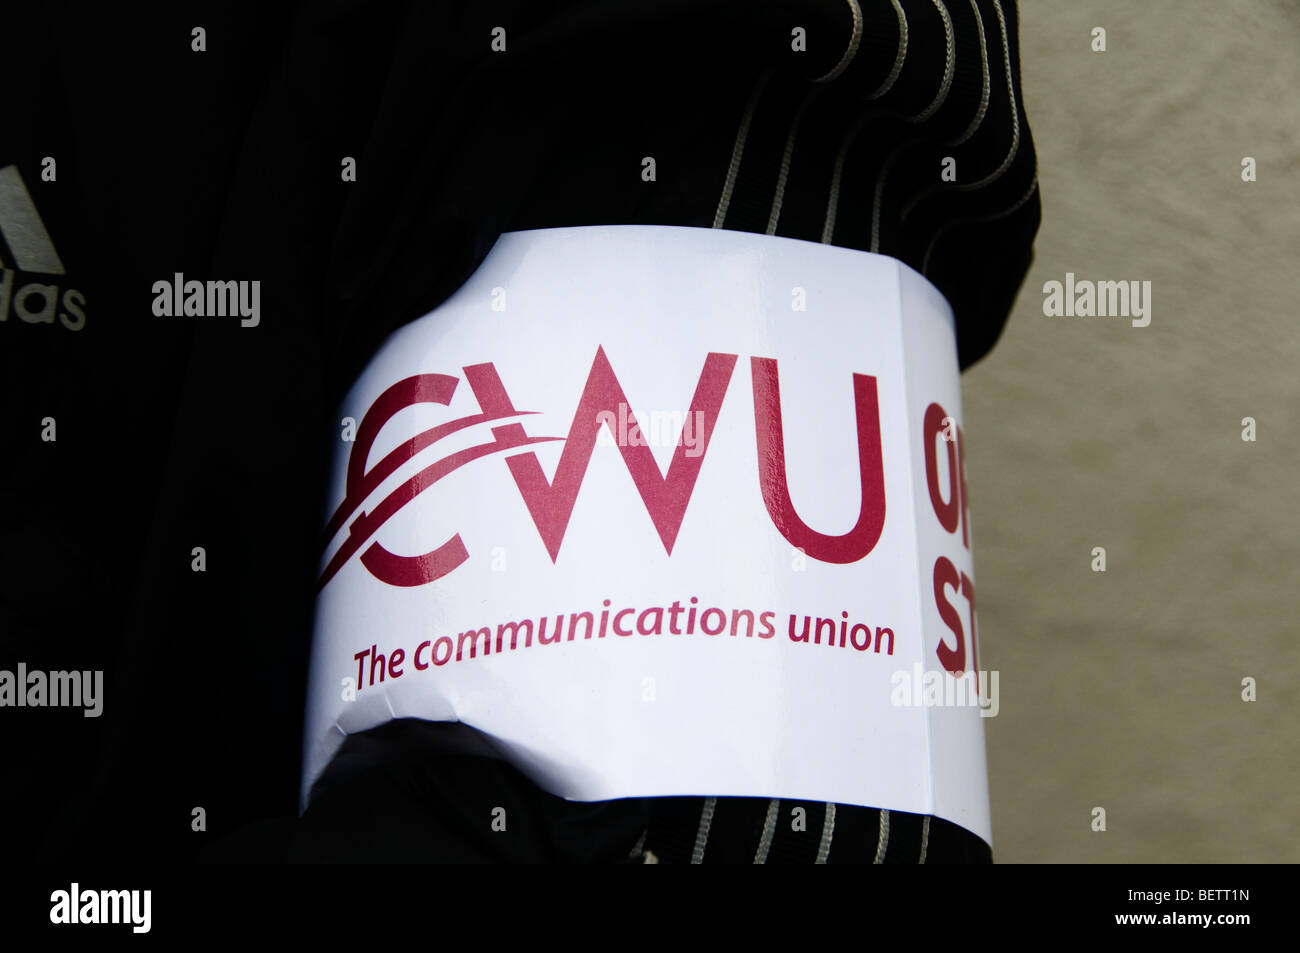 London October 22nd 2009 Post office workers, members of the Communications Union (CWU) strike at Mount Pleasant - Stock Image